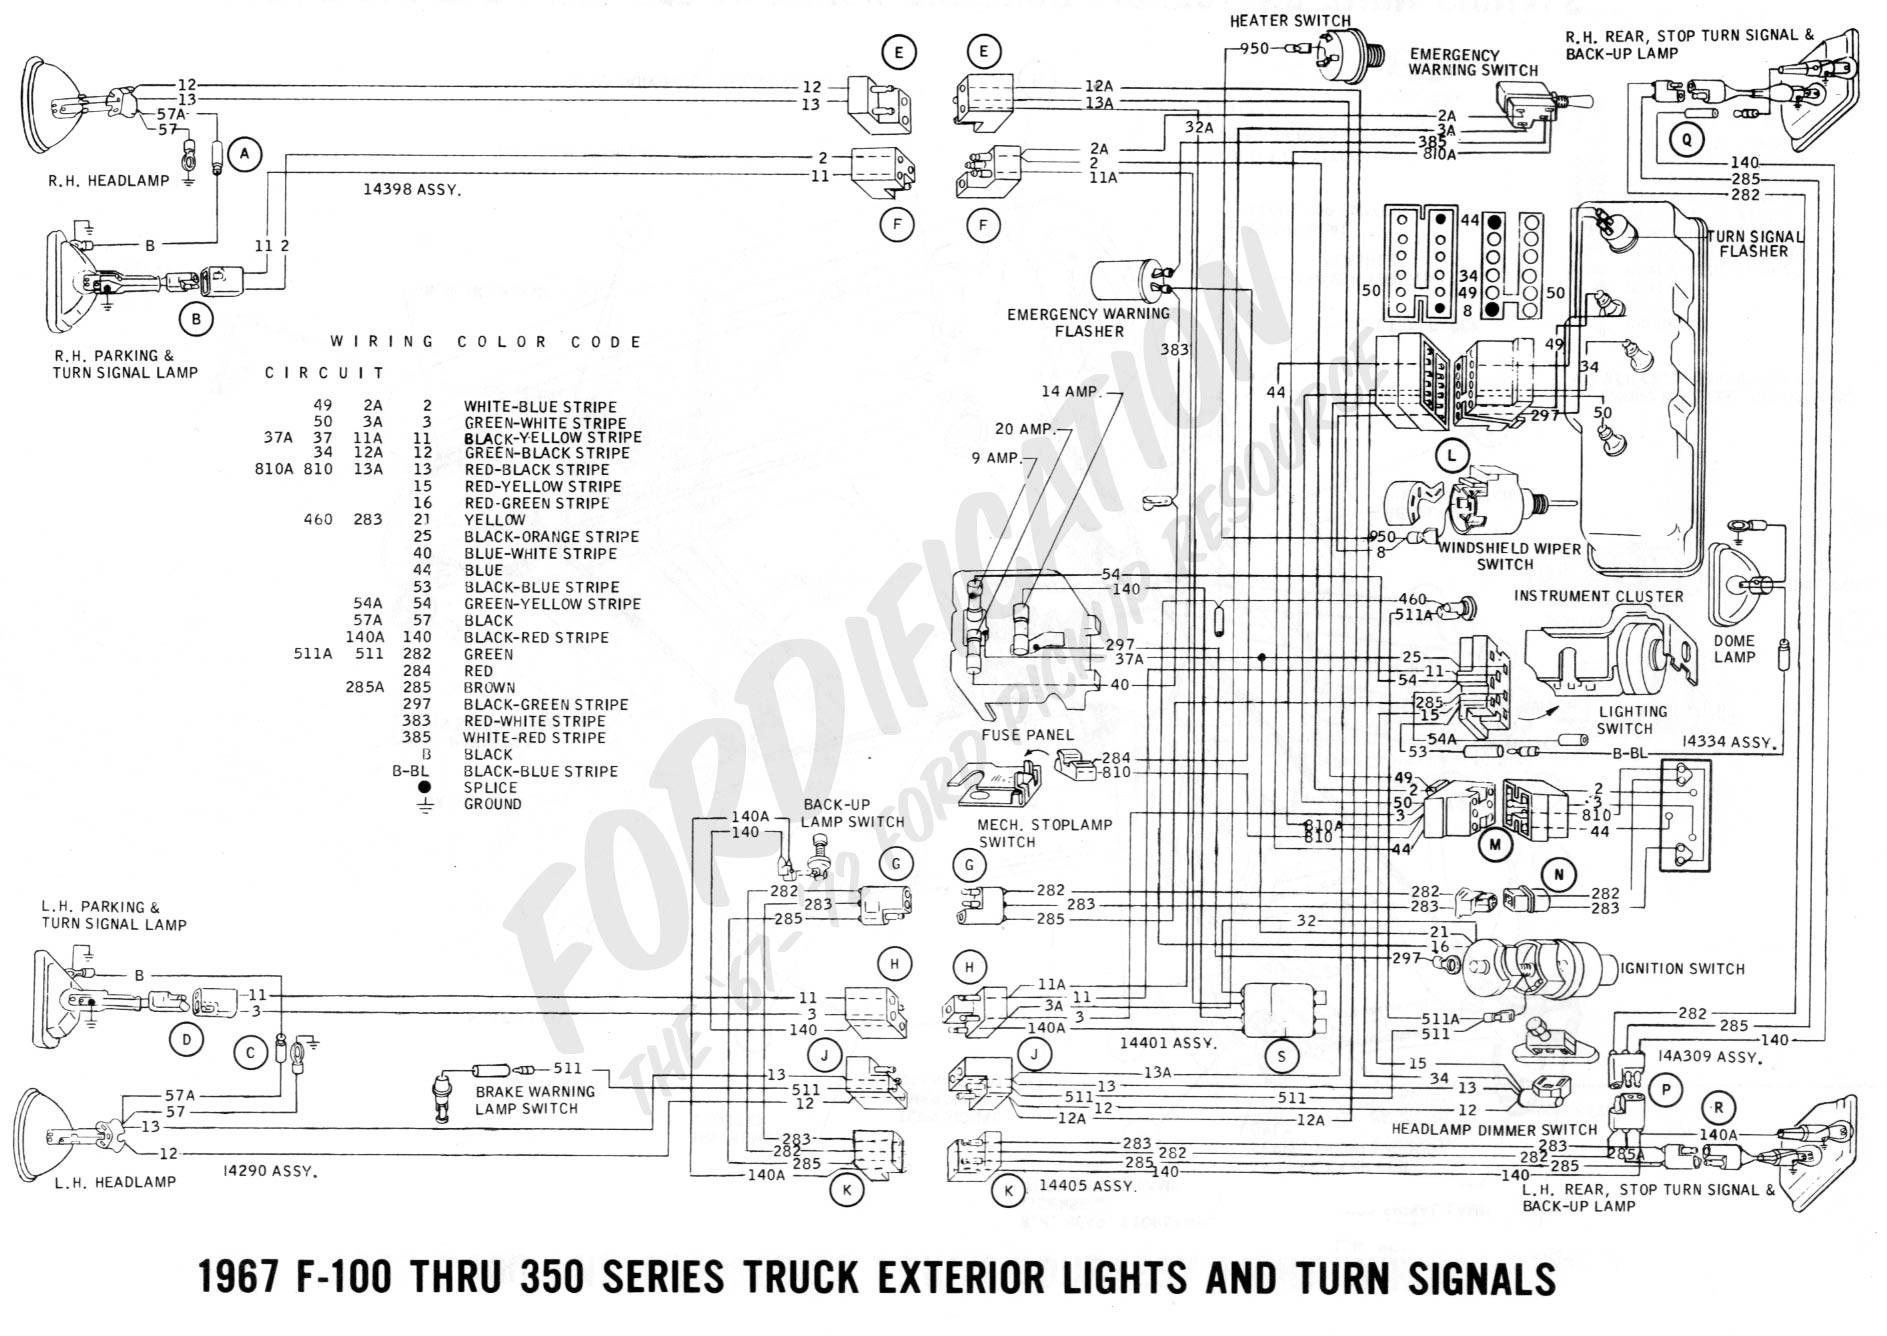 steering column wiring diagram on 1983 ford f 150 wiring diagram rh 144 202  60 241 Ford F-150 Headlight Wiring Diagram Ford F-150 Radio Wiring Diagram